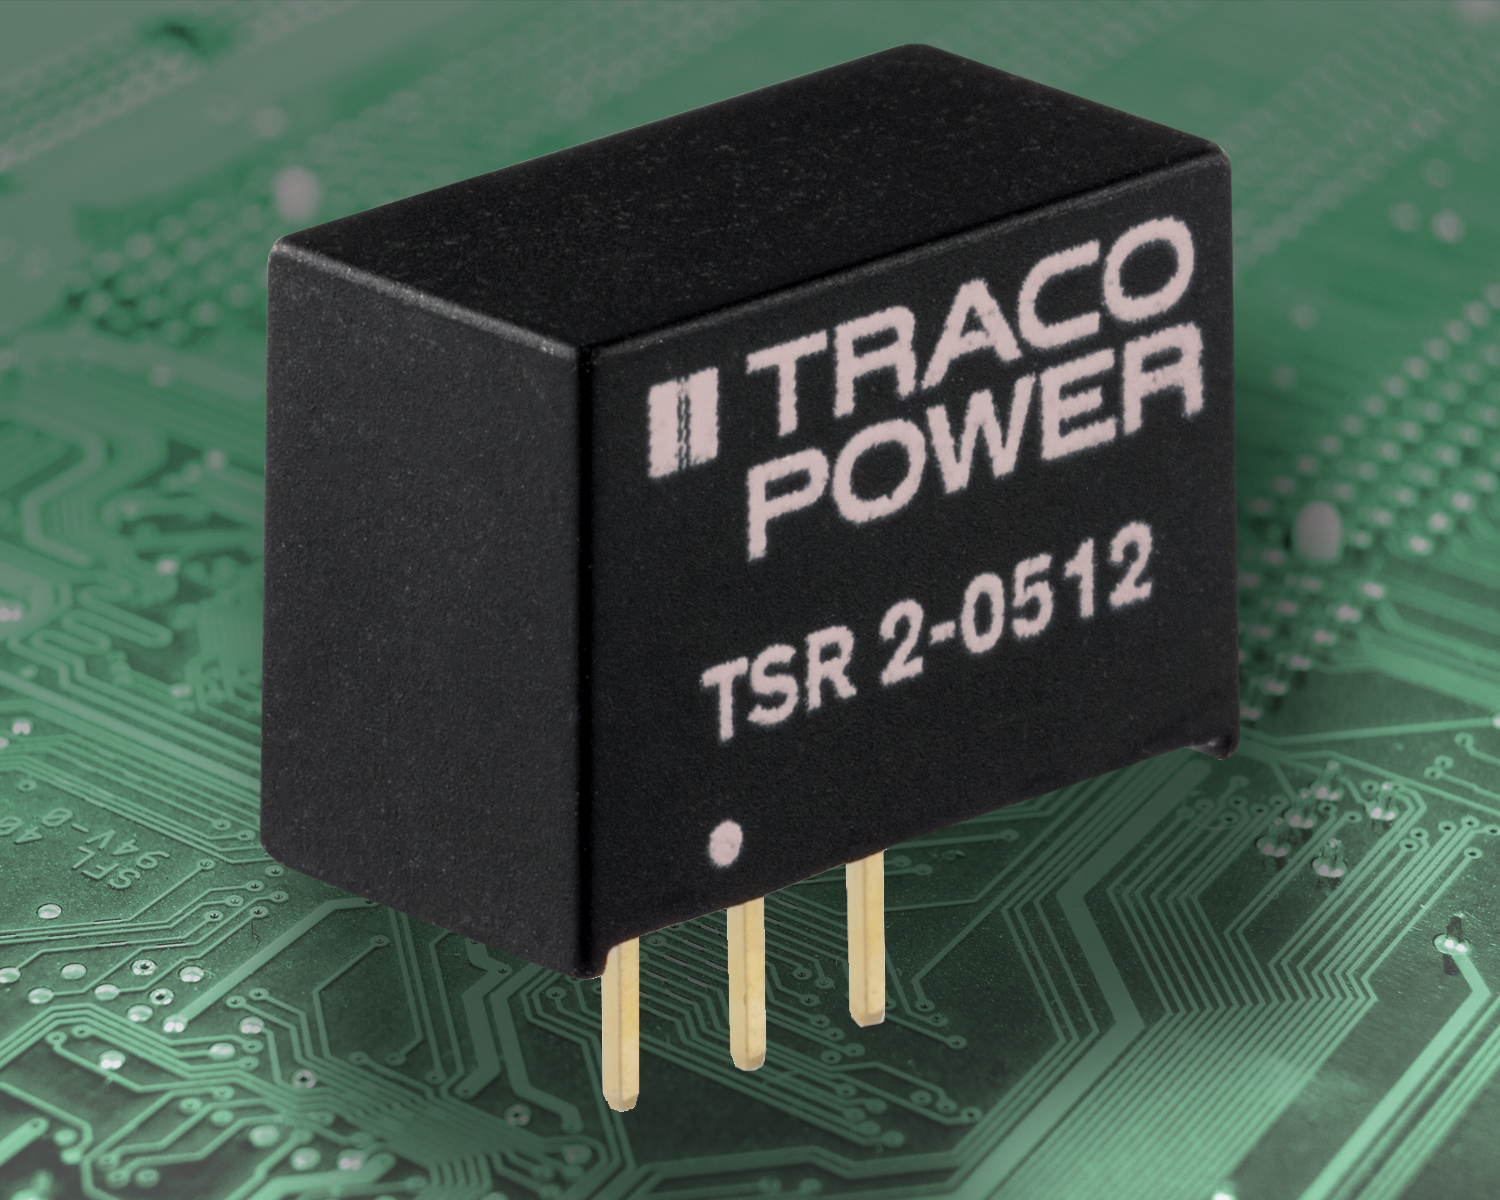 2 Amp Step-Down Switching Regulators Achieves Efficiency up to 96%